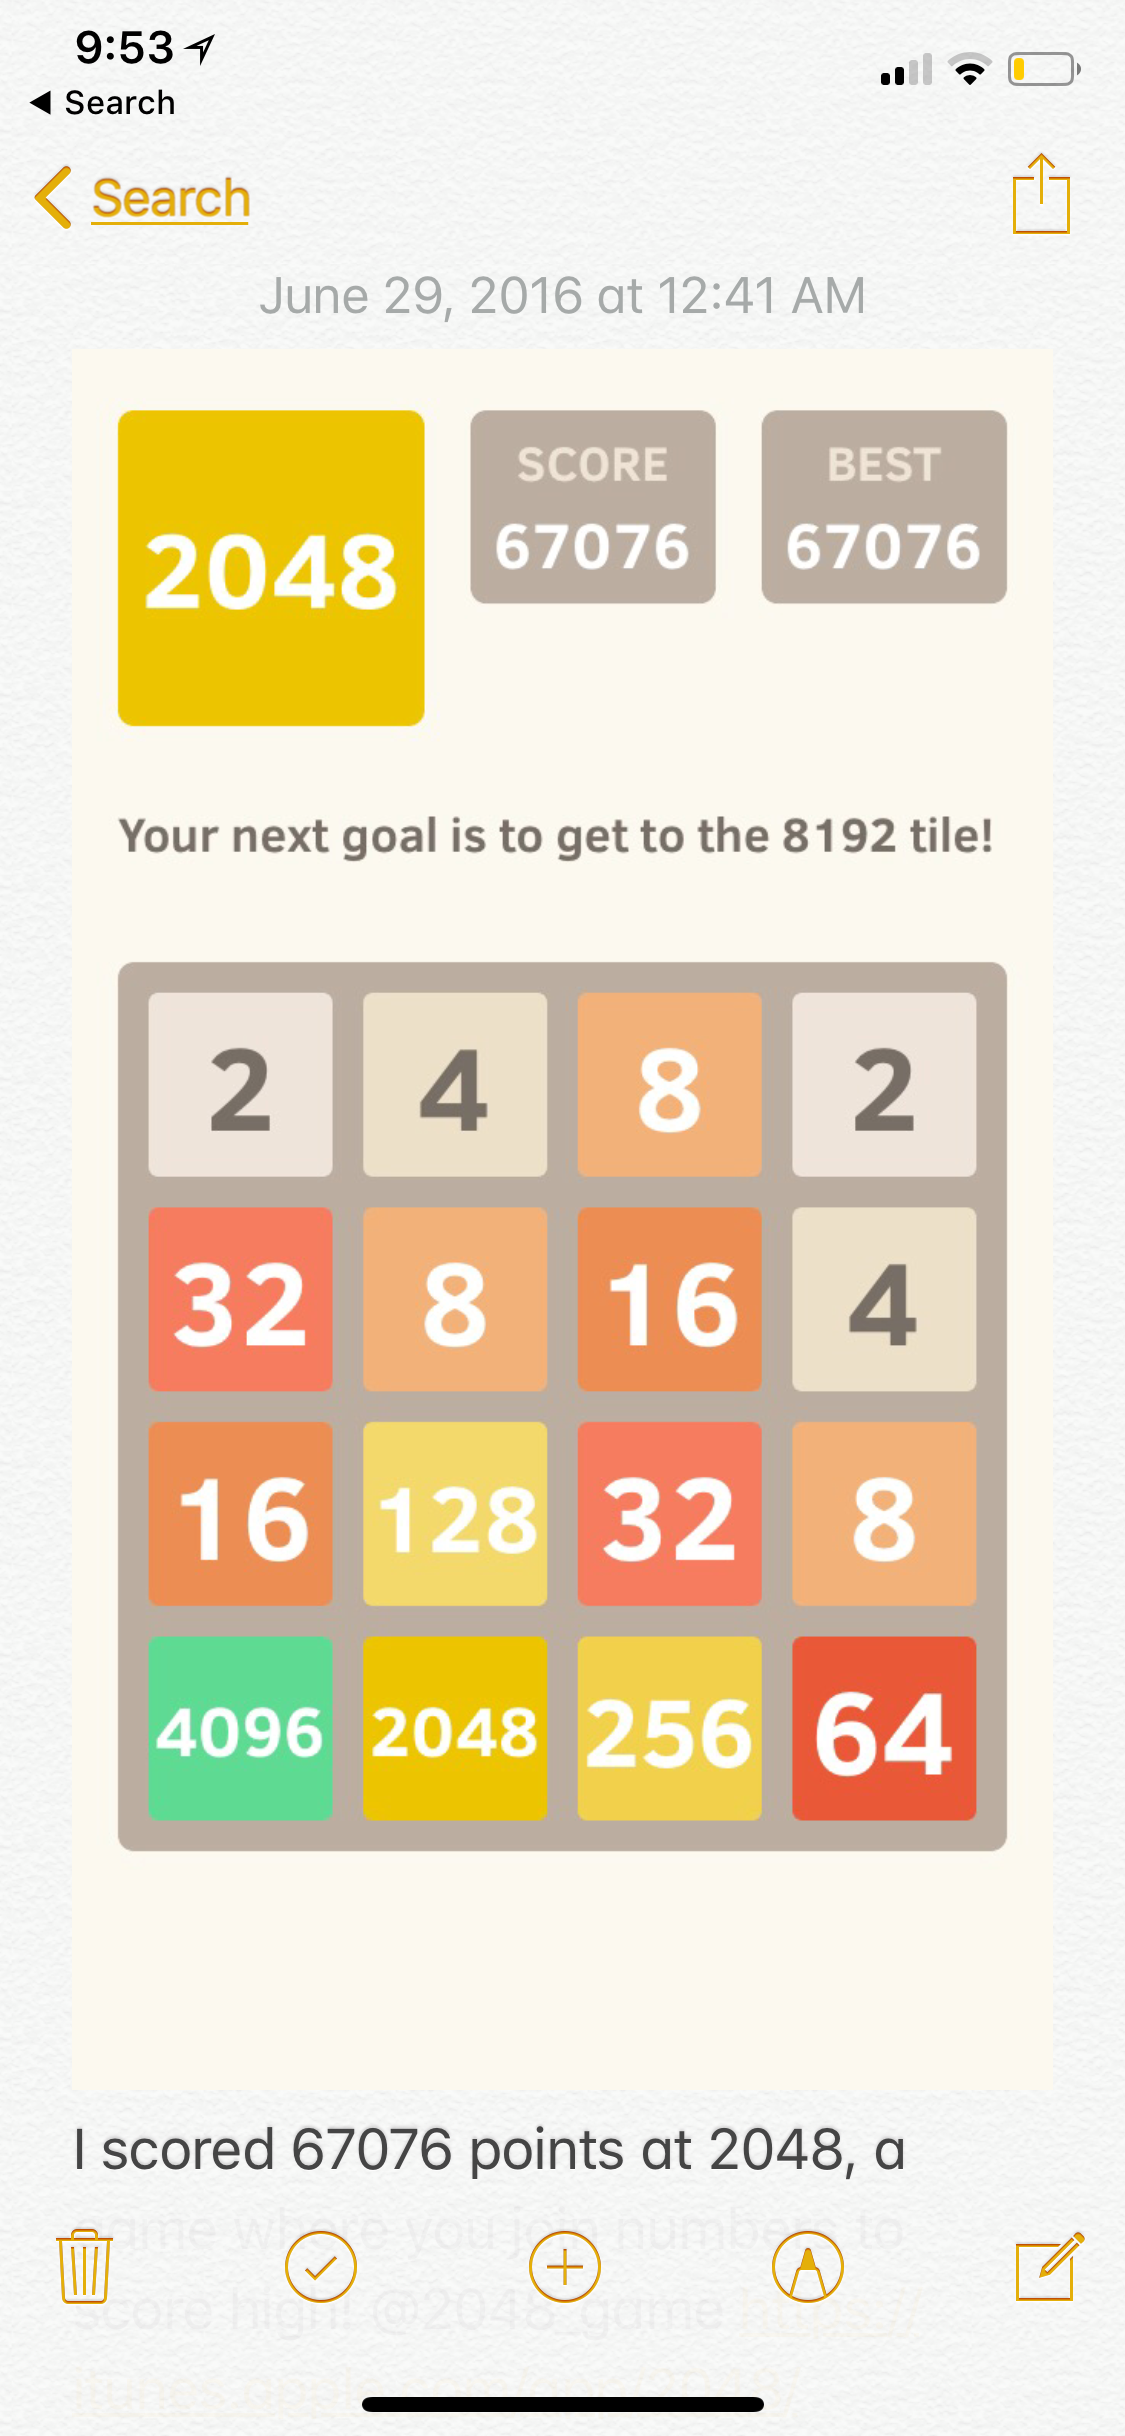 2048 67,076 points